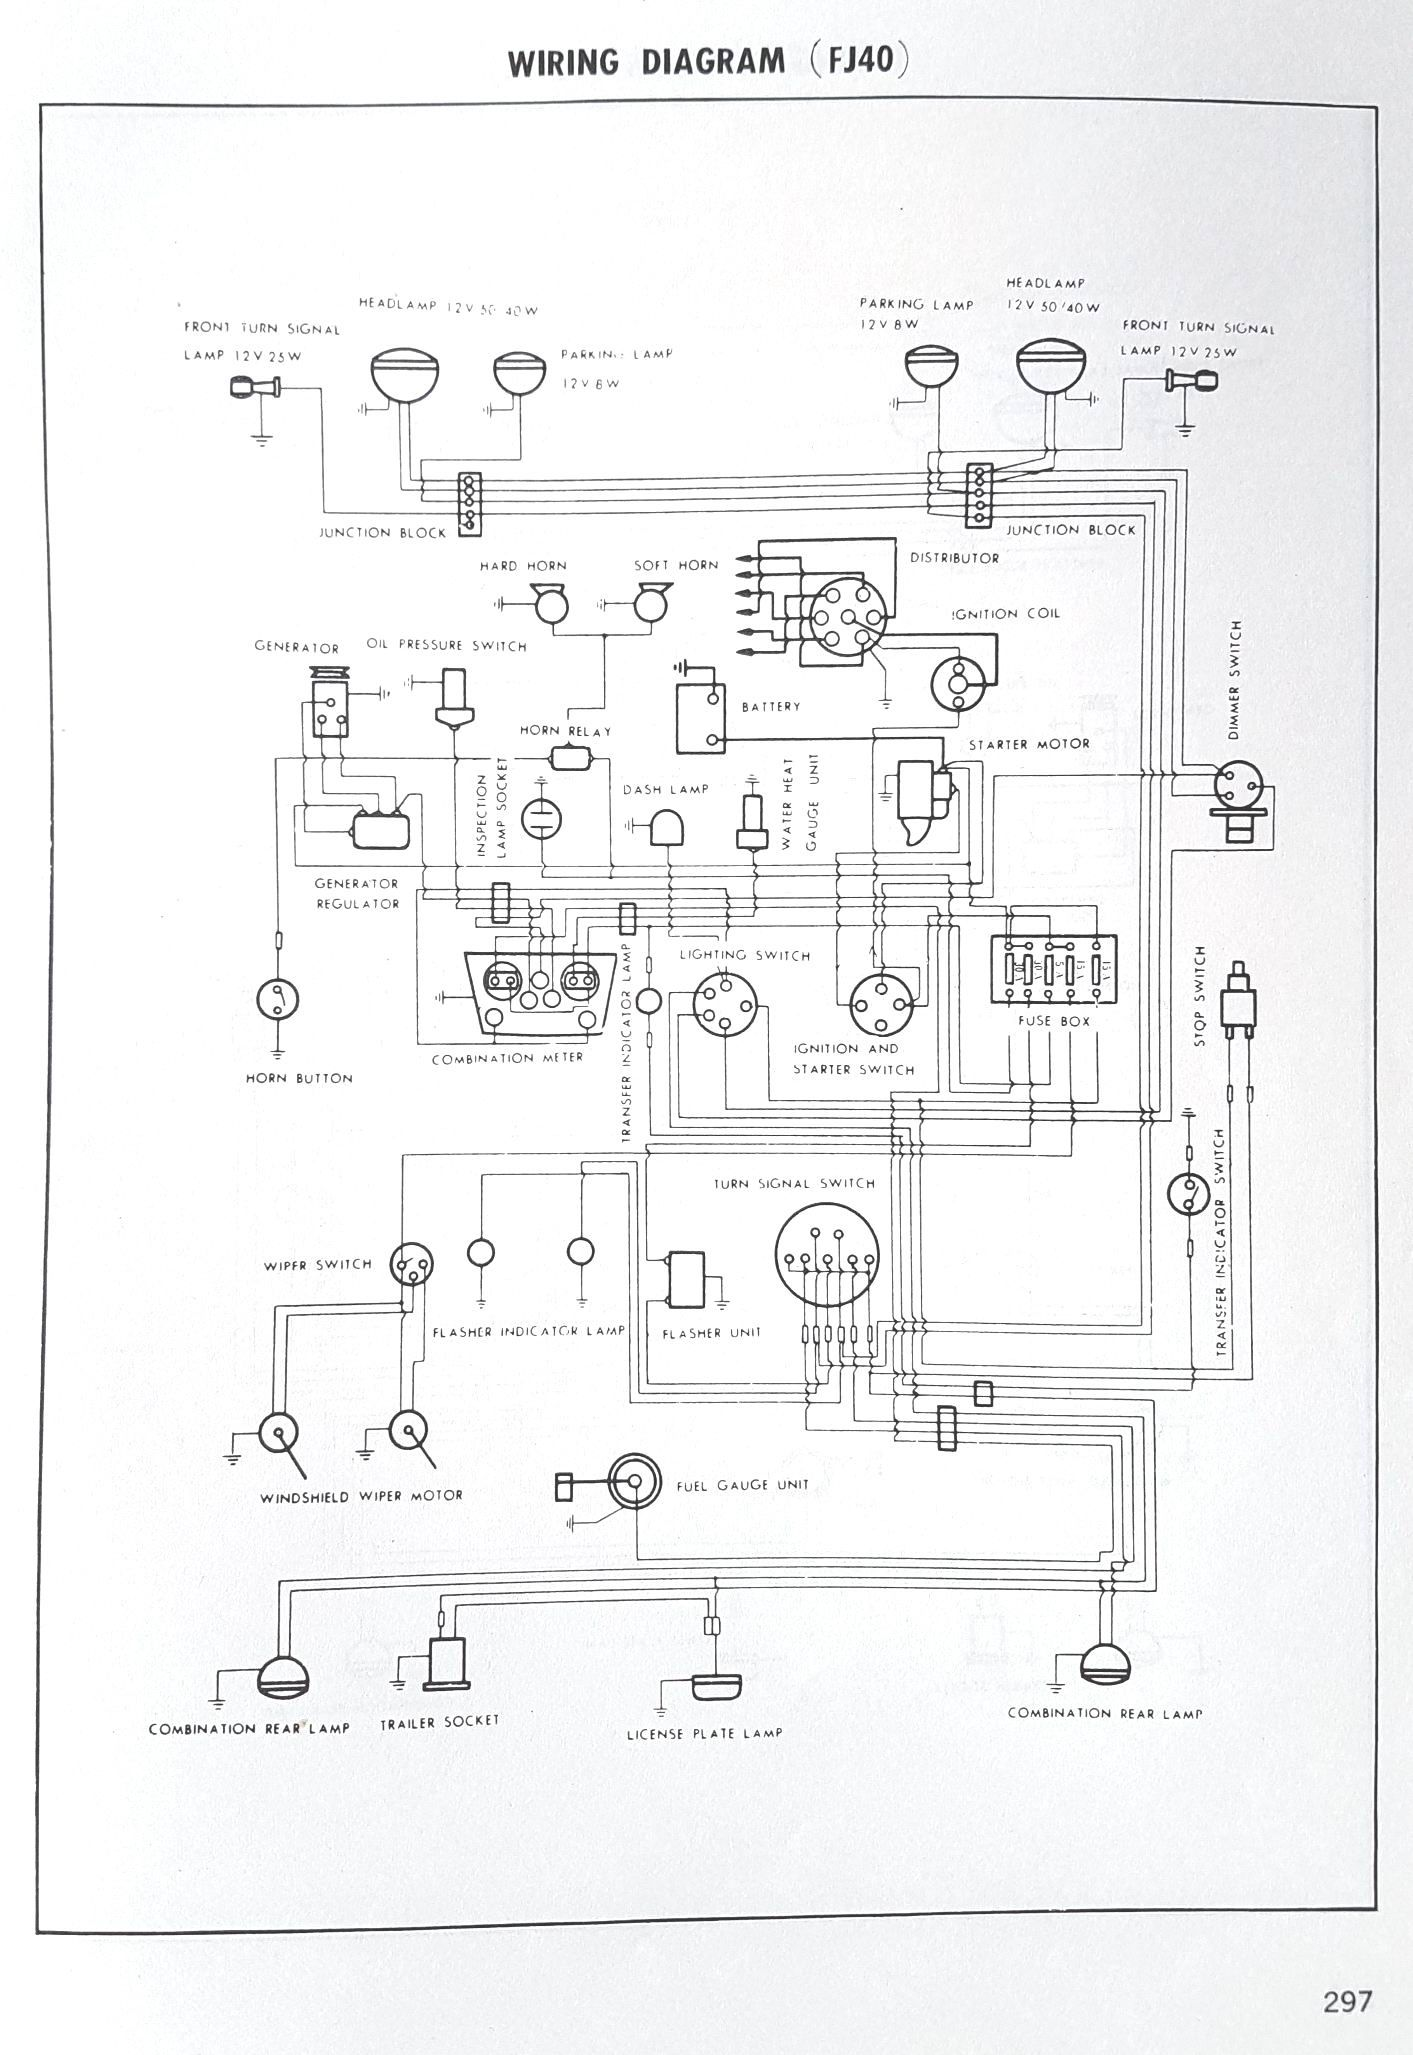 small resolution of toyota landcruiser service manual wiring diagram fj40